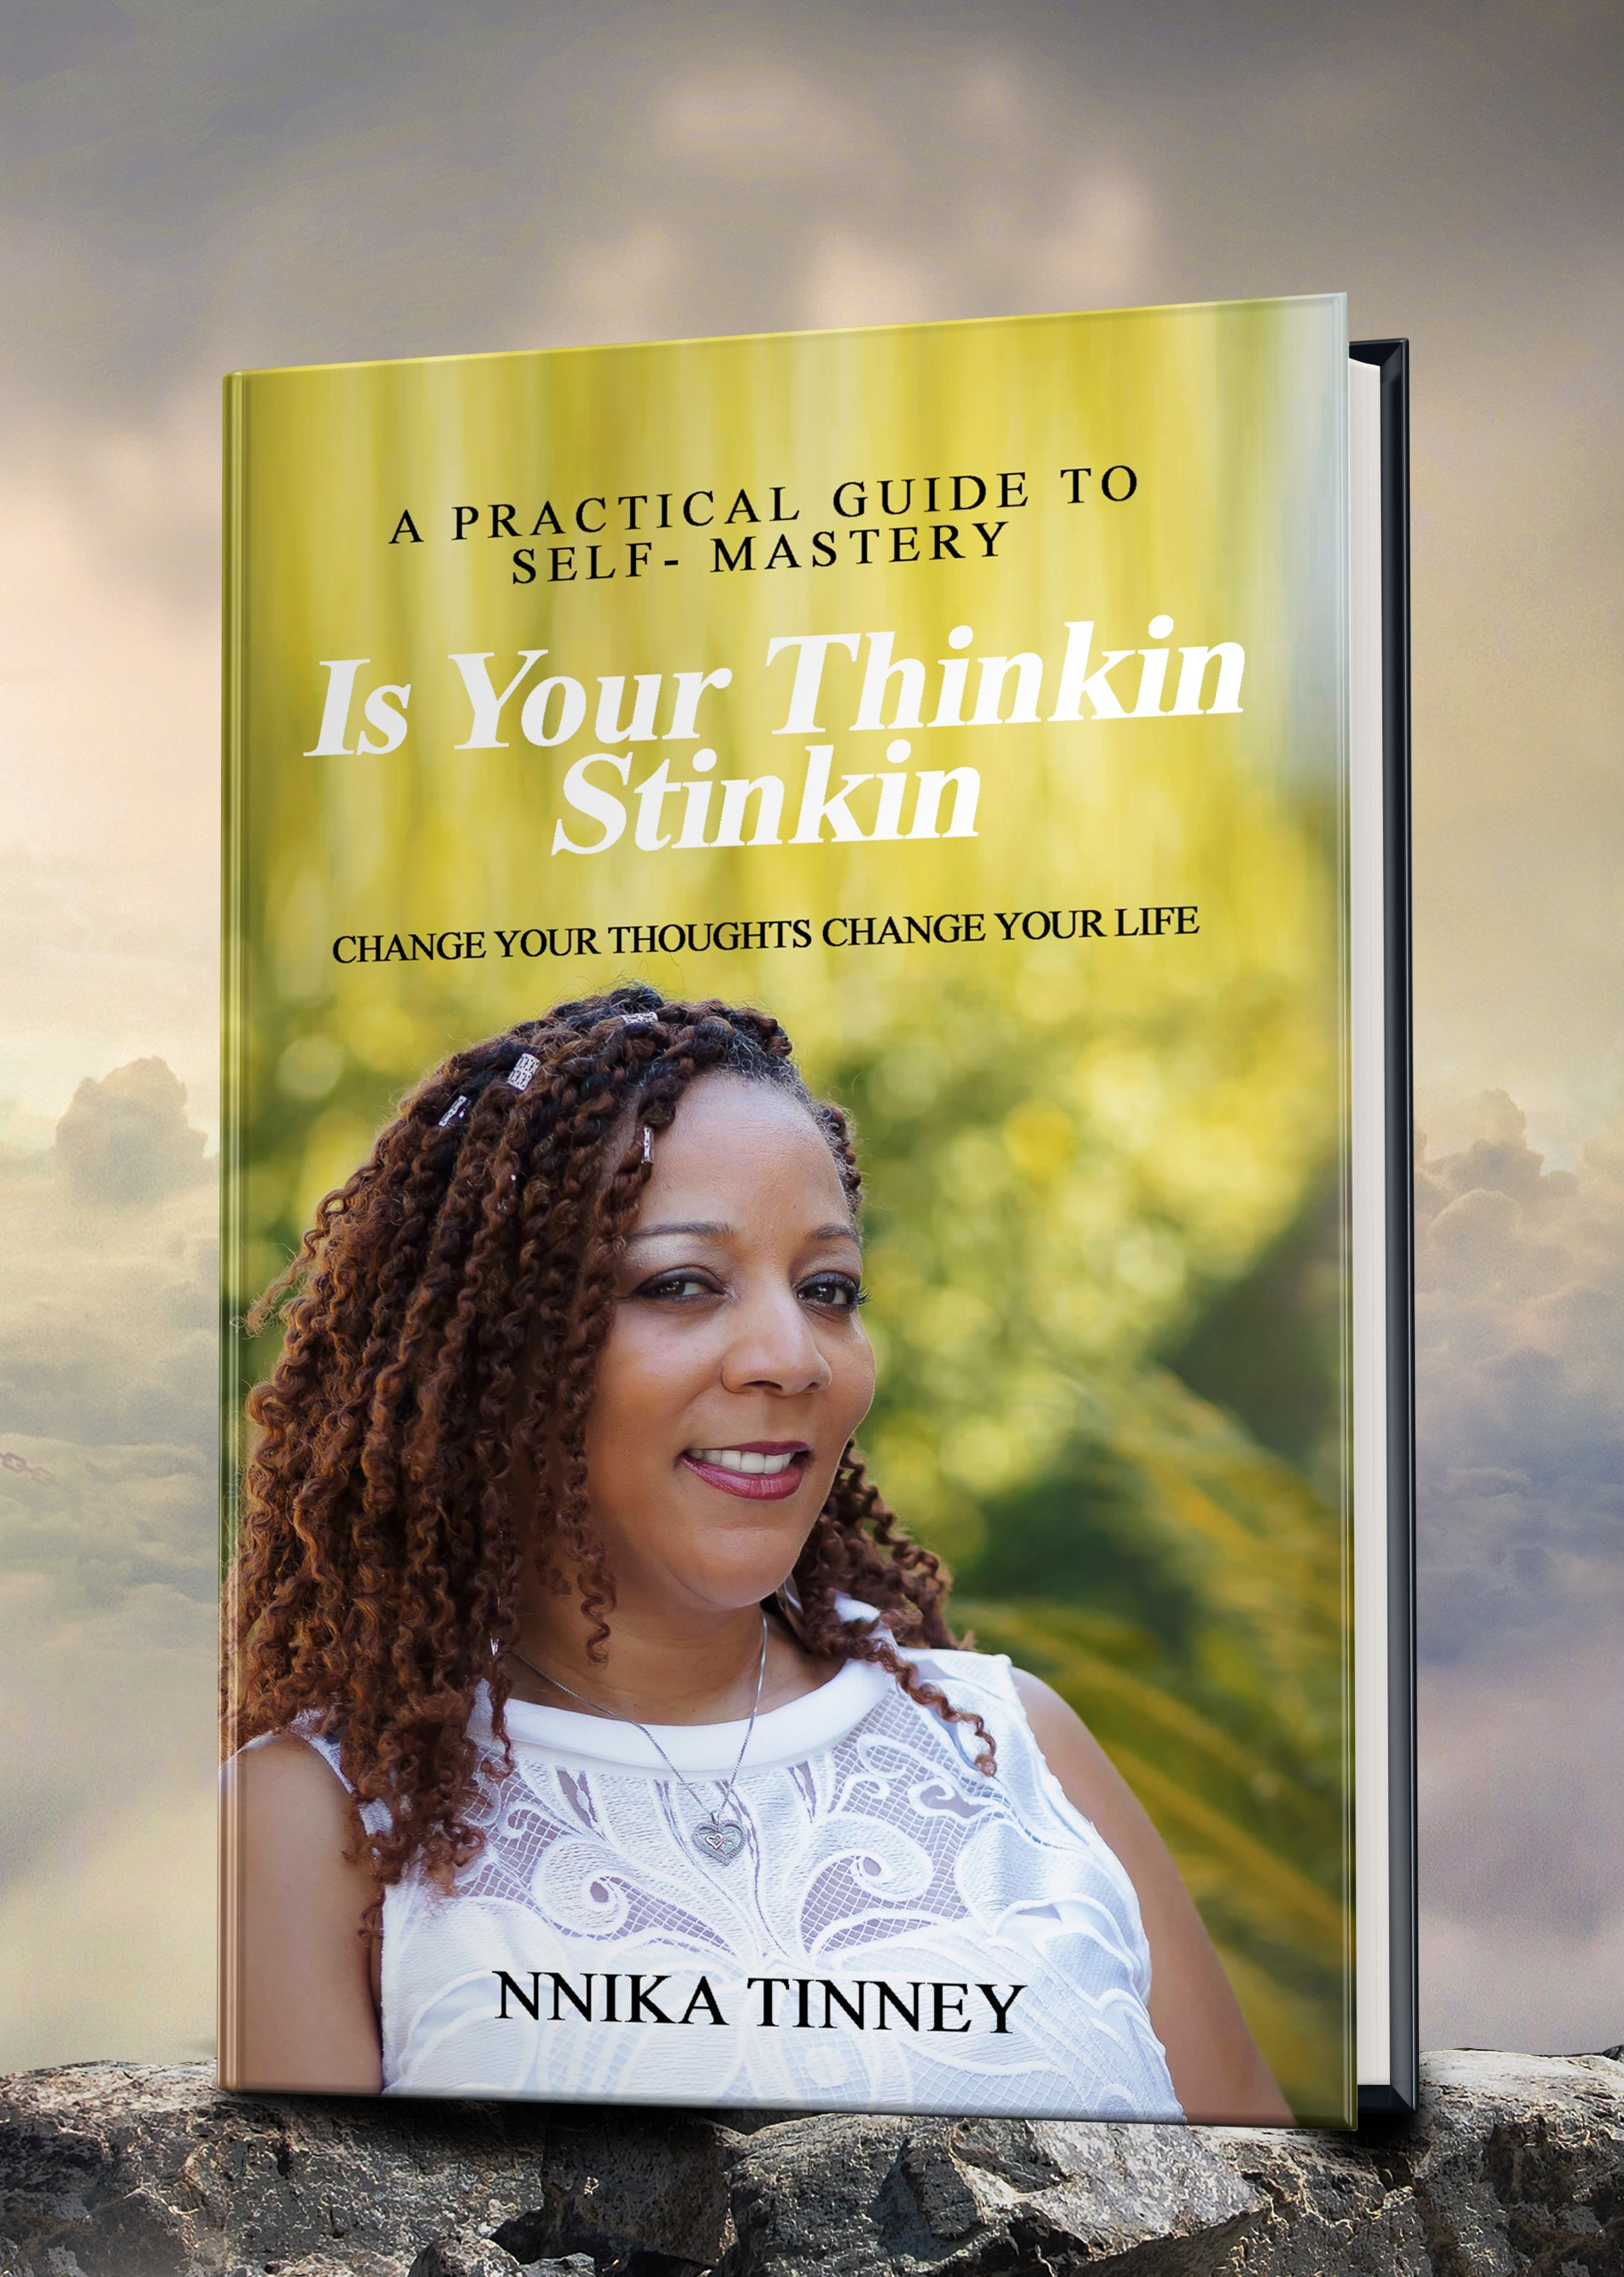 A Practical Guide to SelfMastery Is Your Thinking Stinkin Change Your Thoughts Change Your Life